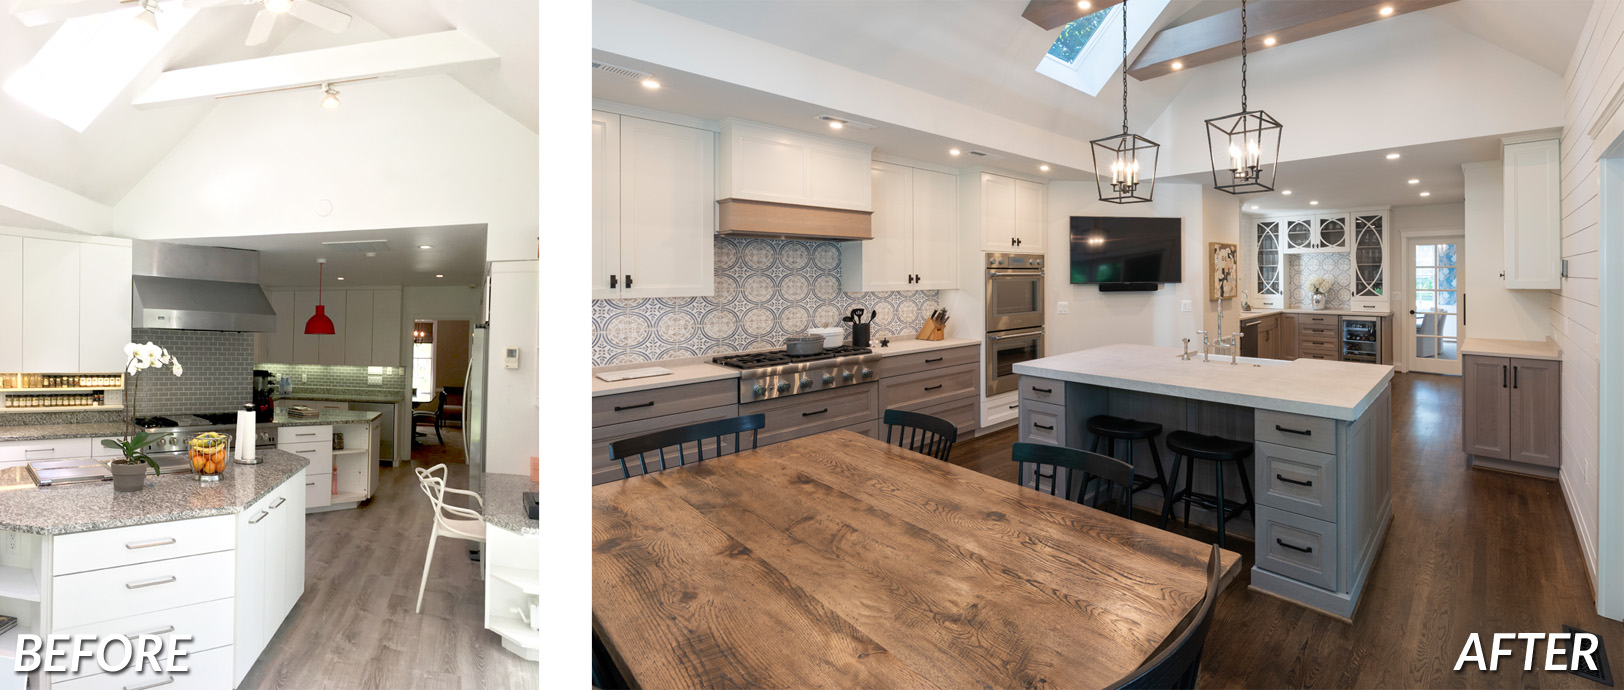 BOWA Design Design Build - DC Kitchen Renovaiton Before & After